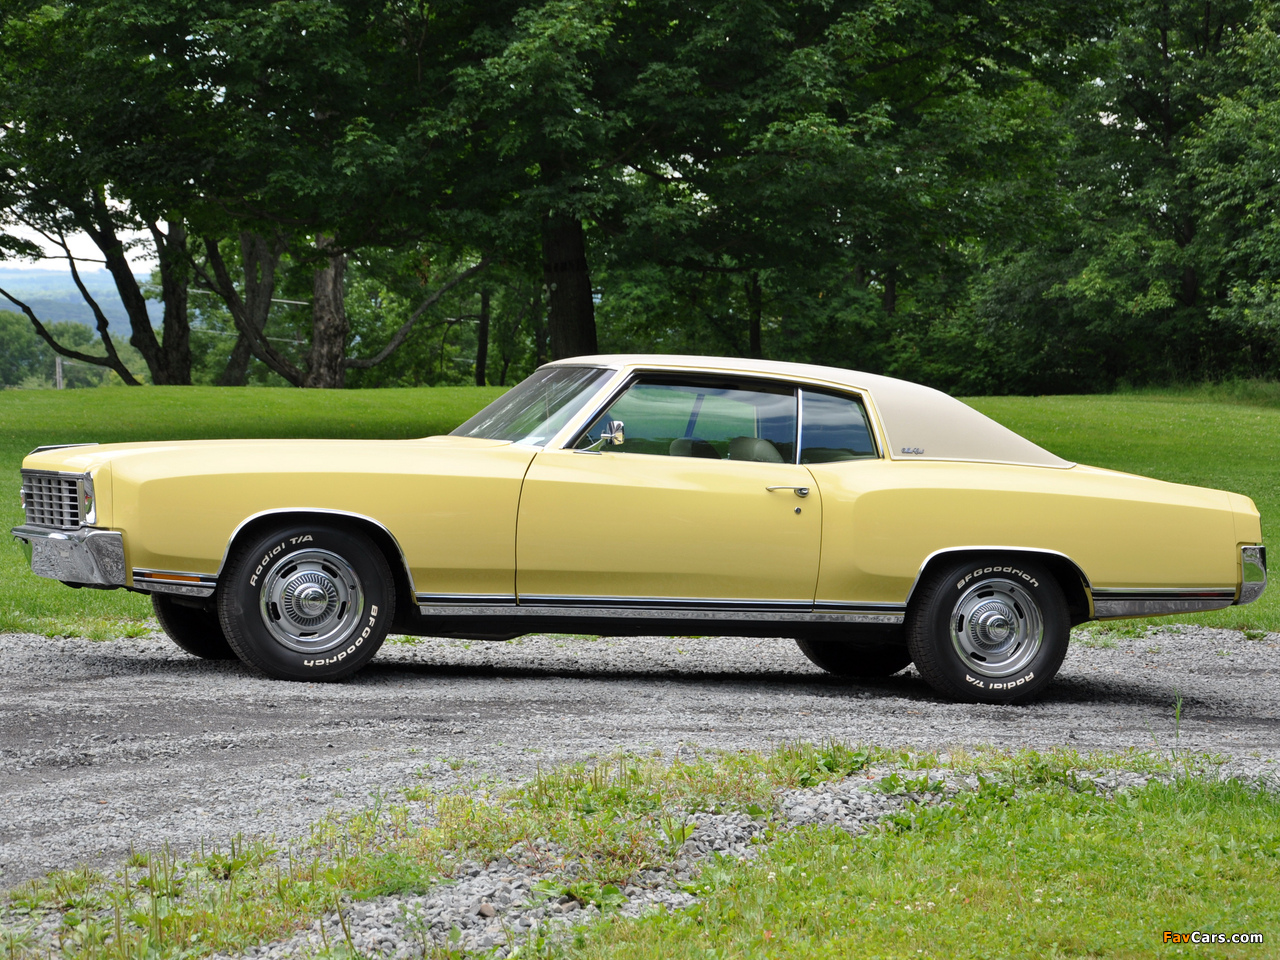 Chevrolet Monte Carlo 1972 wallpapers (1280 x 960)